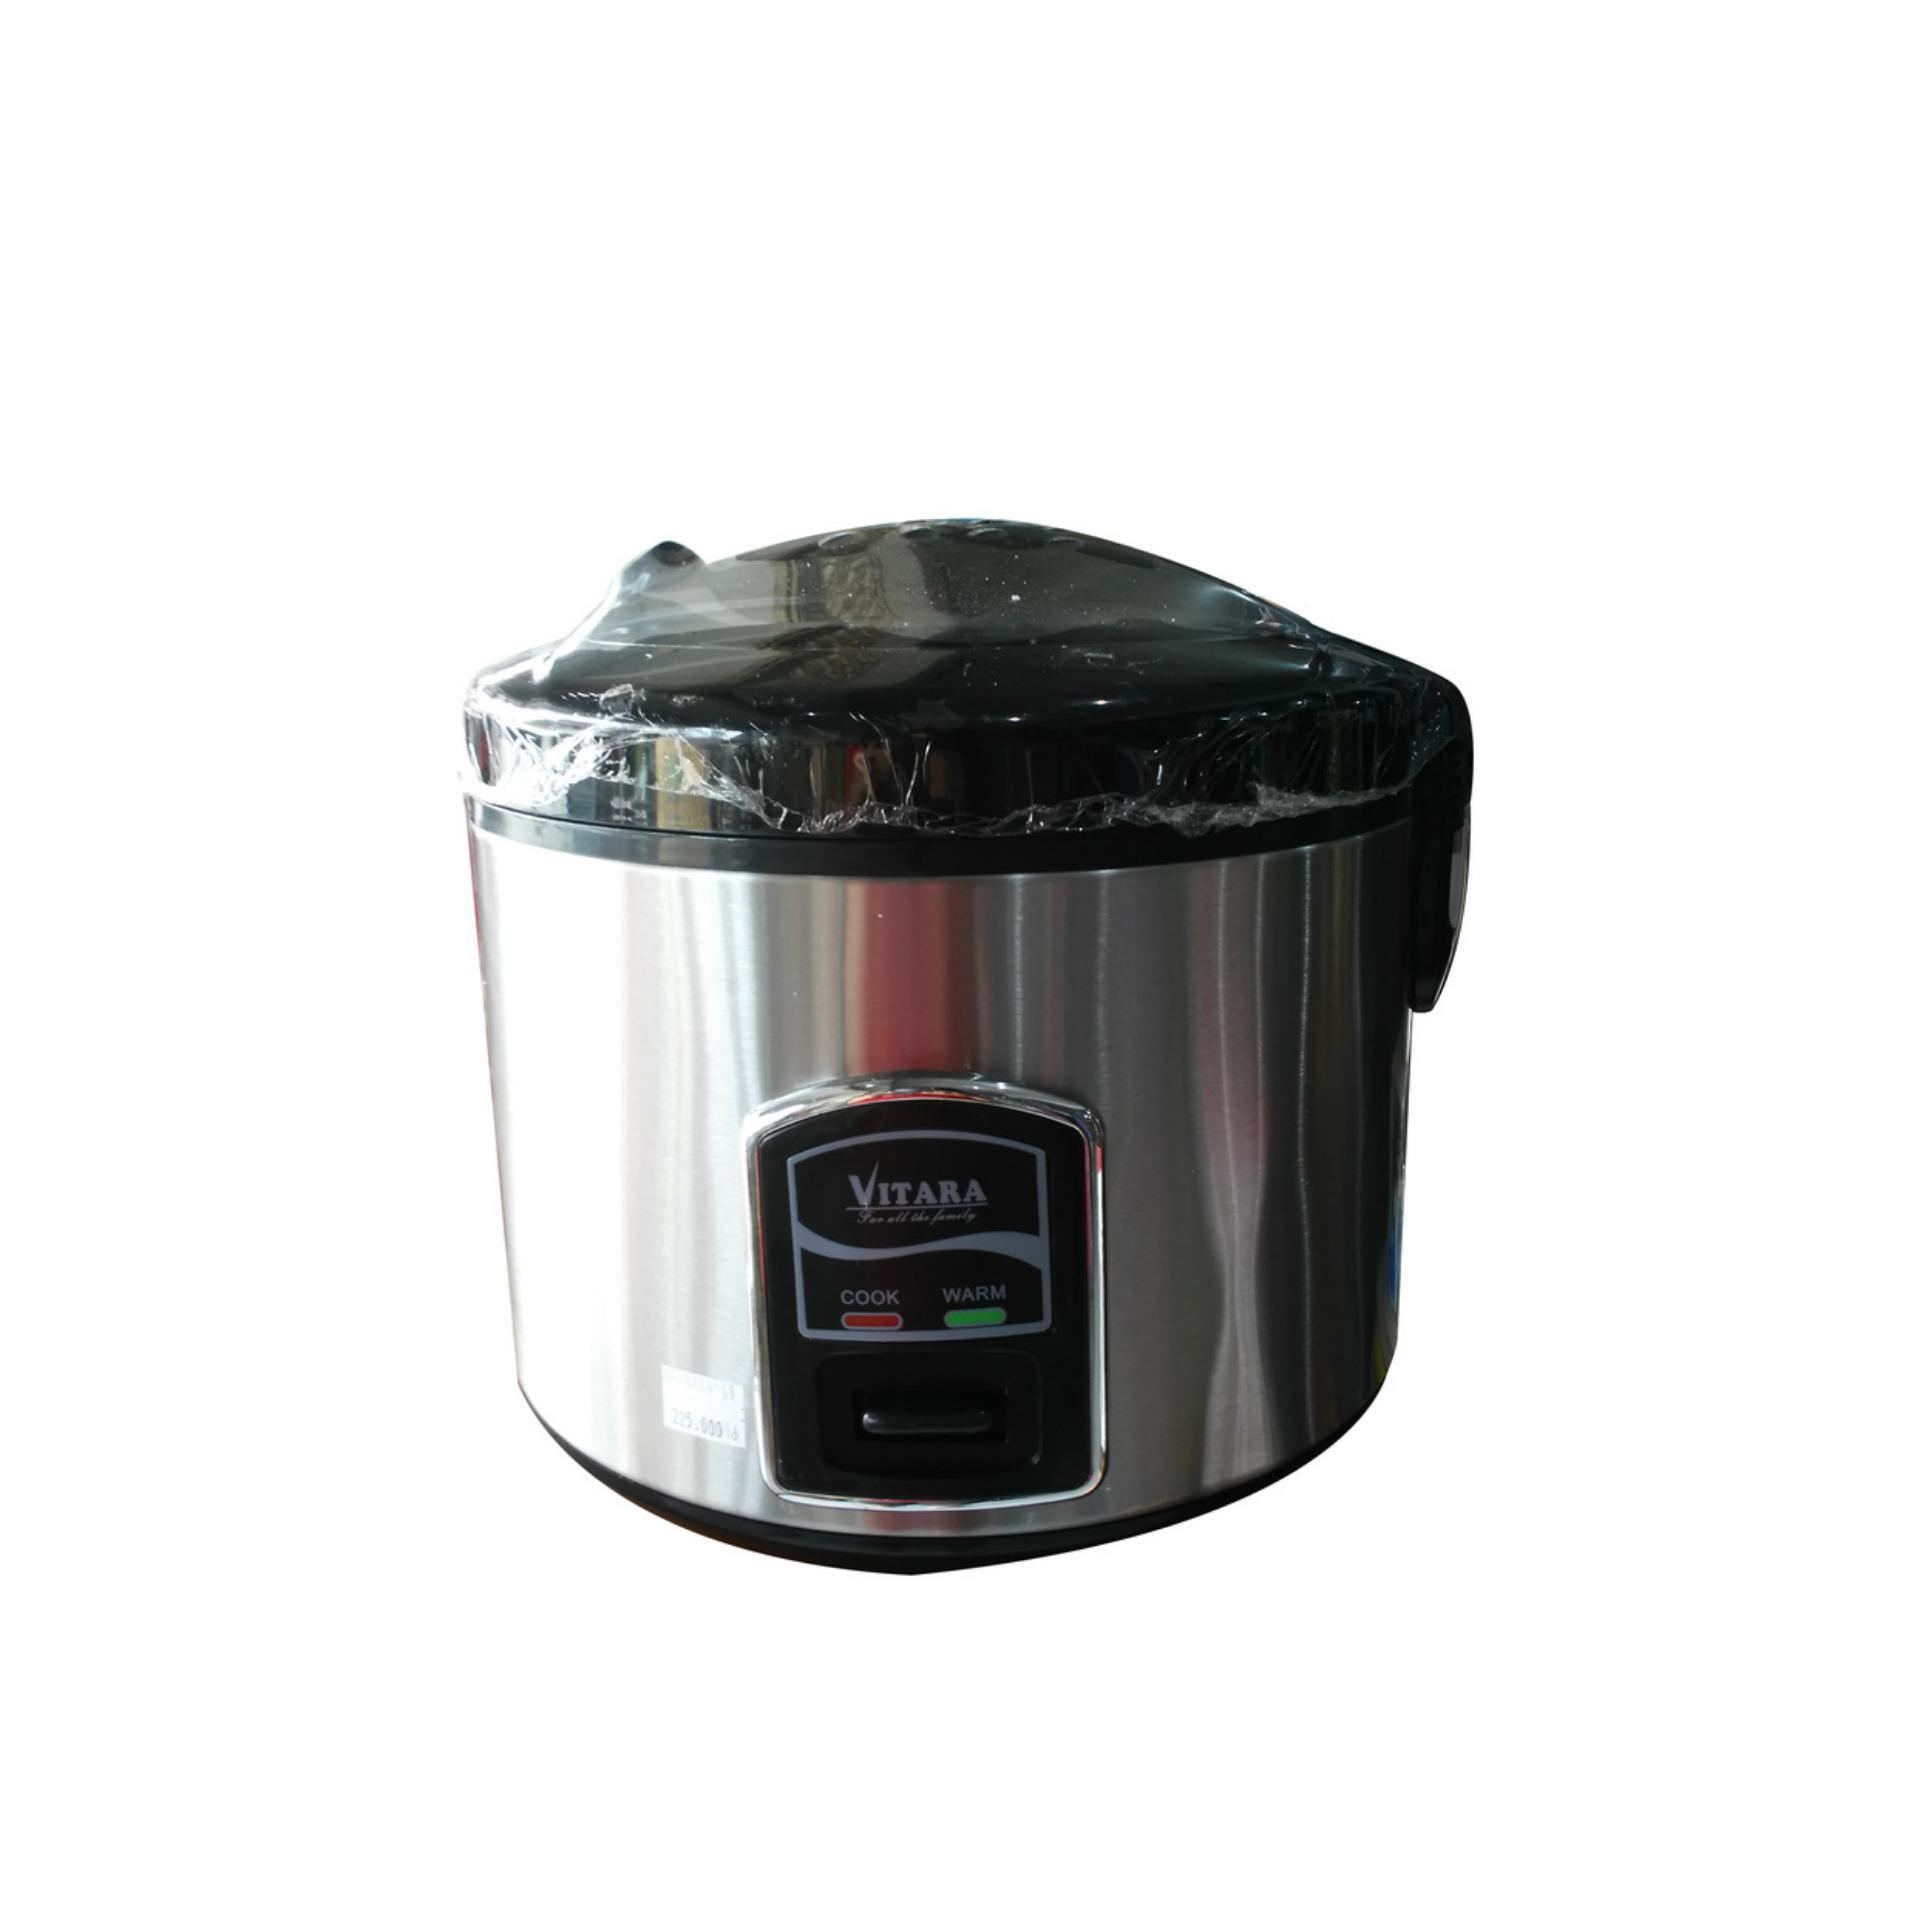 Miyako 3 In 1 Rice Cooker 06 Liter Mcm 606 Page 2 Daftar Update 609 Magic Com Warm And Cook A 0 6l Elevenia Source Stainless 8l Vitara